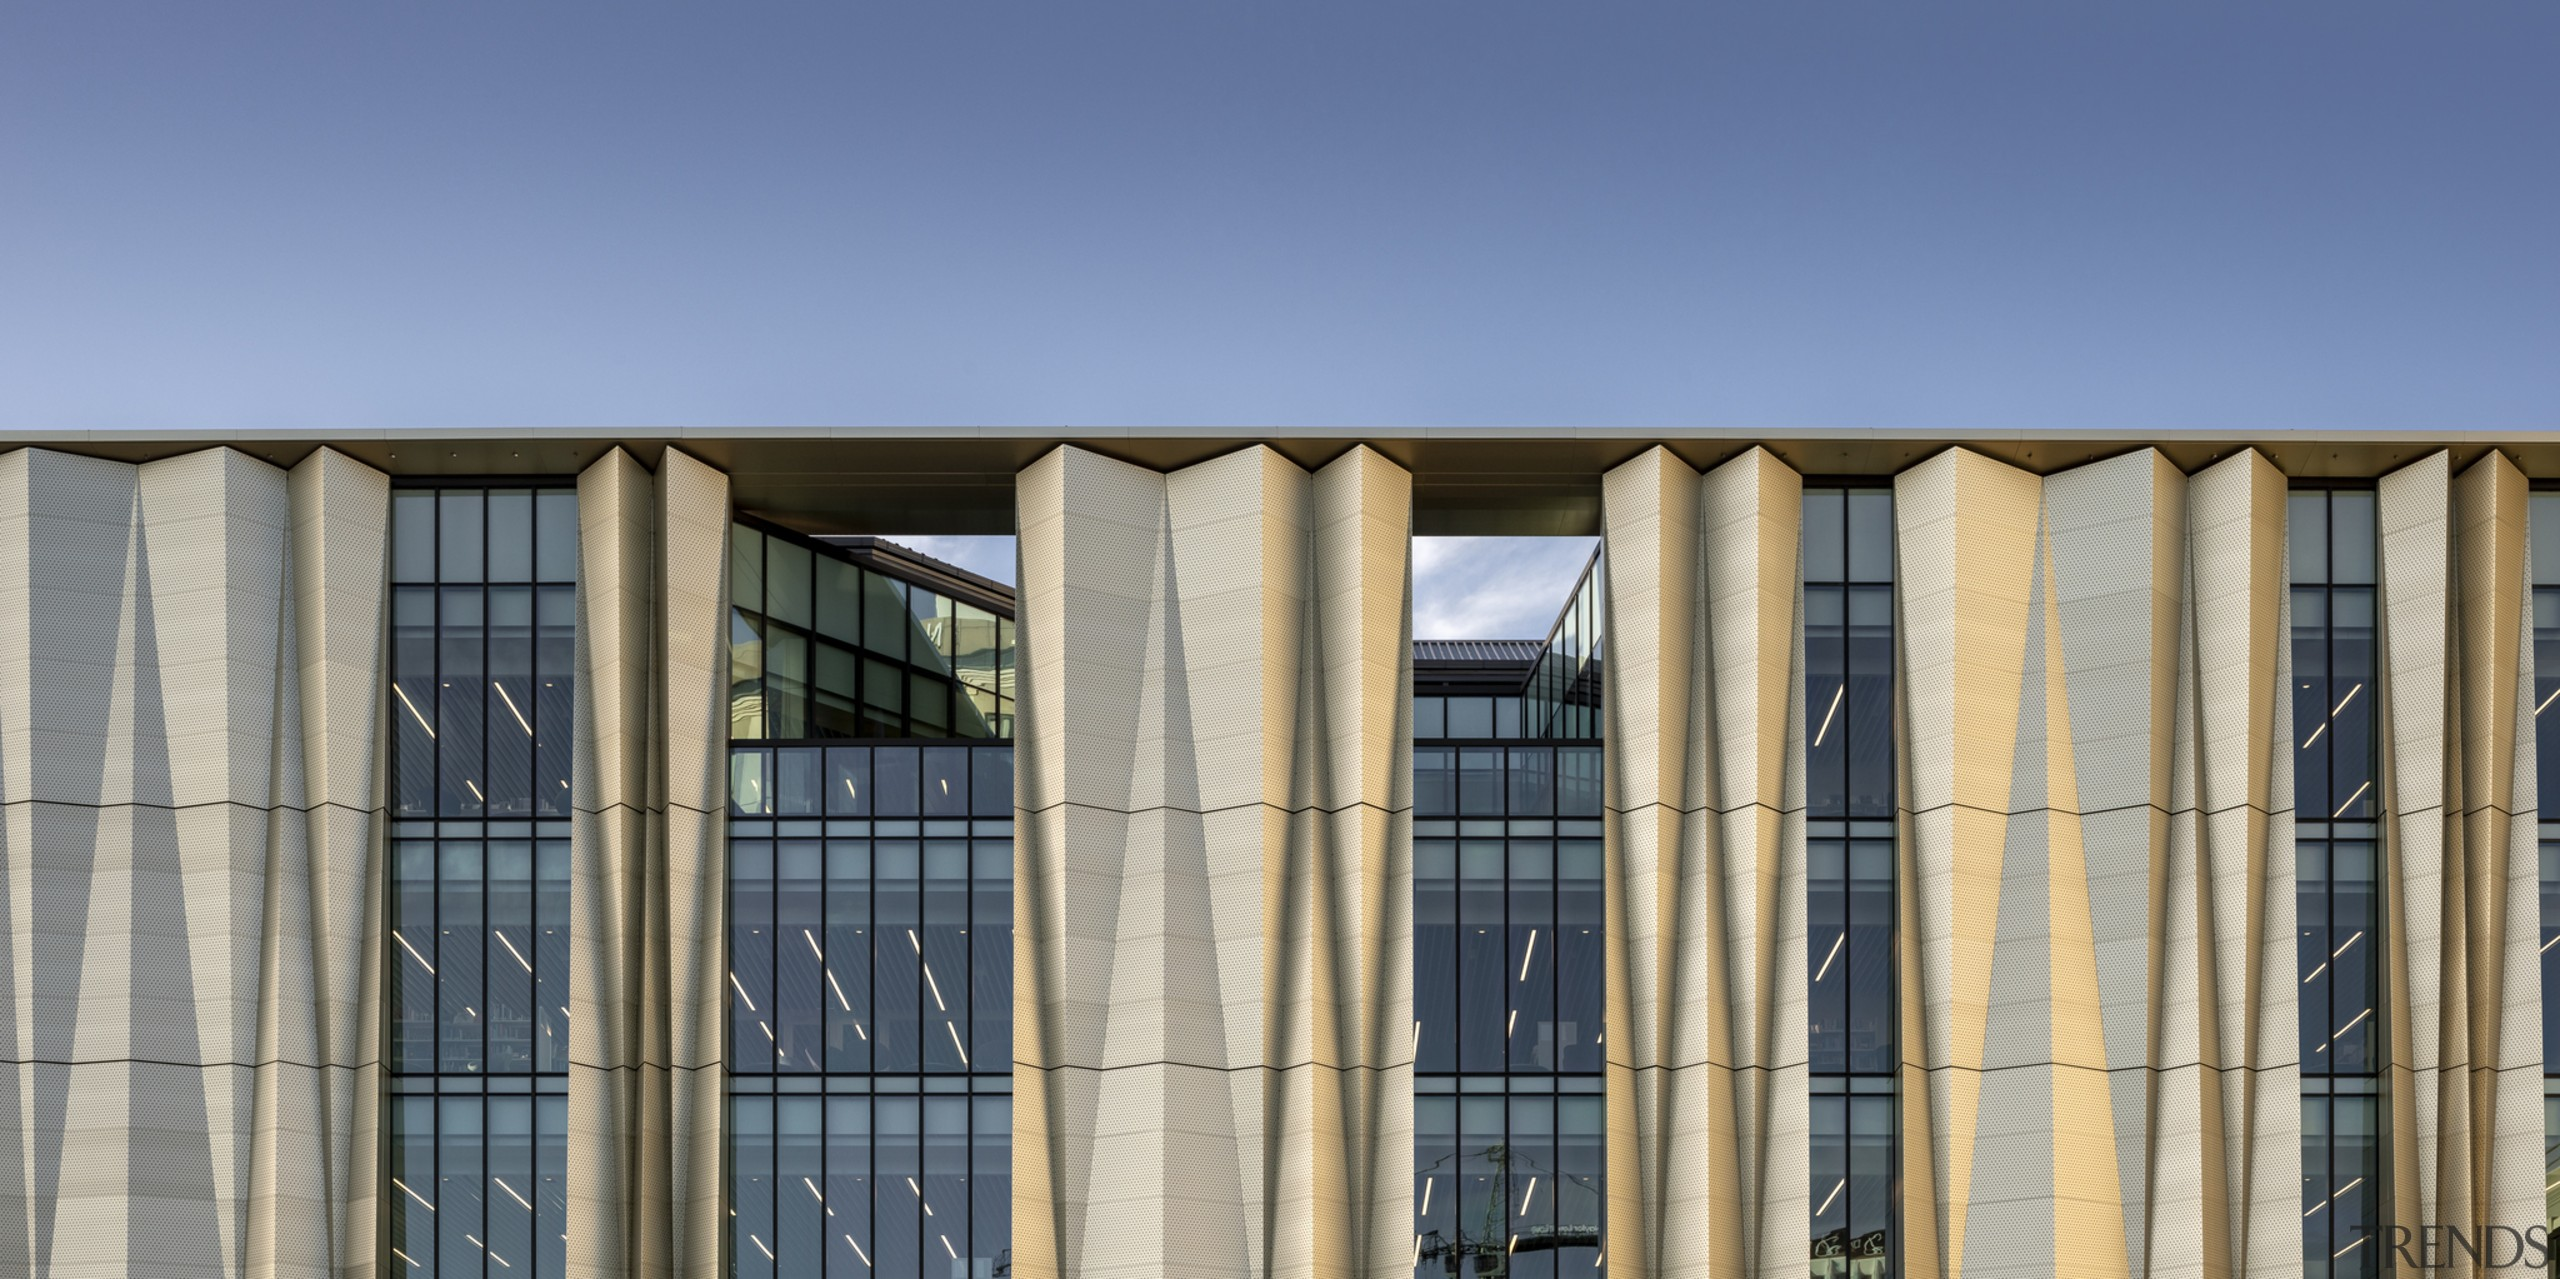 Christchurch Central Library – cultural cladding architecture, building, column, commercial building, corporate headquarters, daytime, facade, structure, window, gray